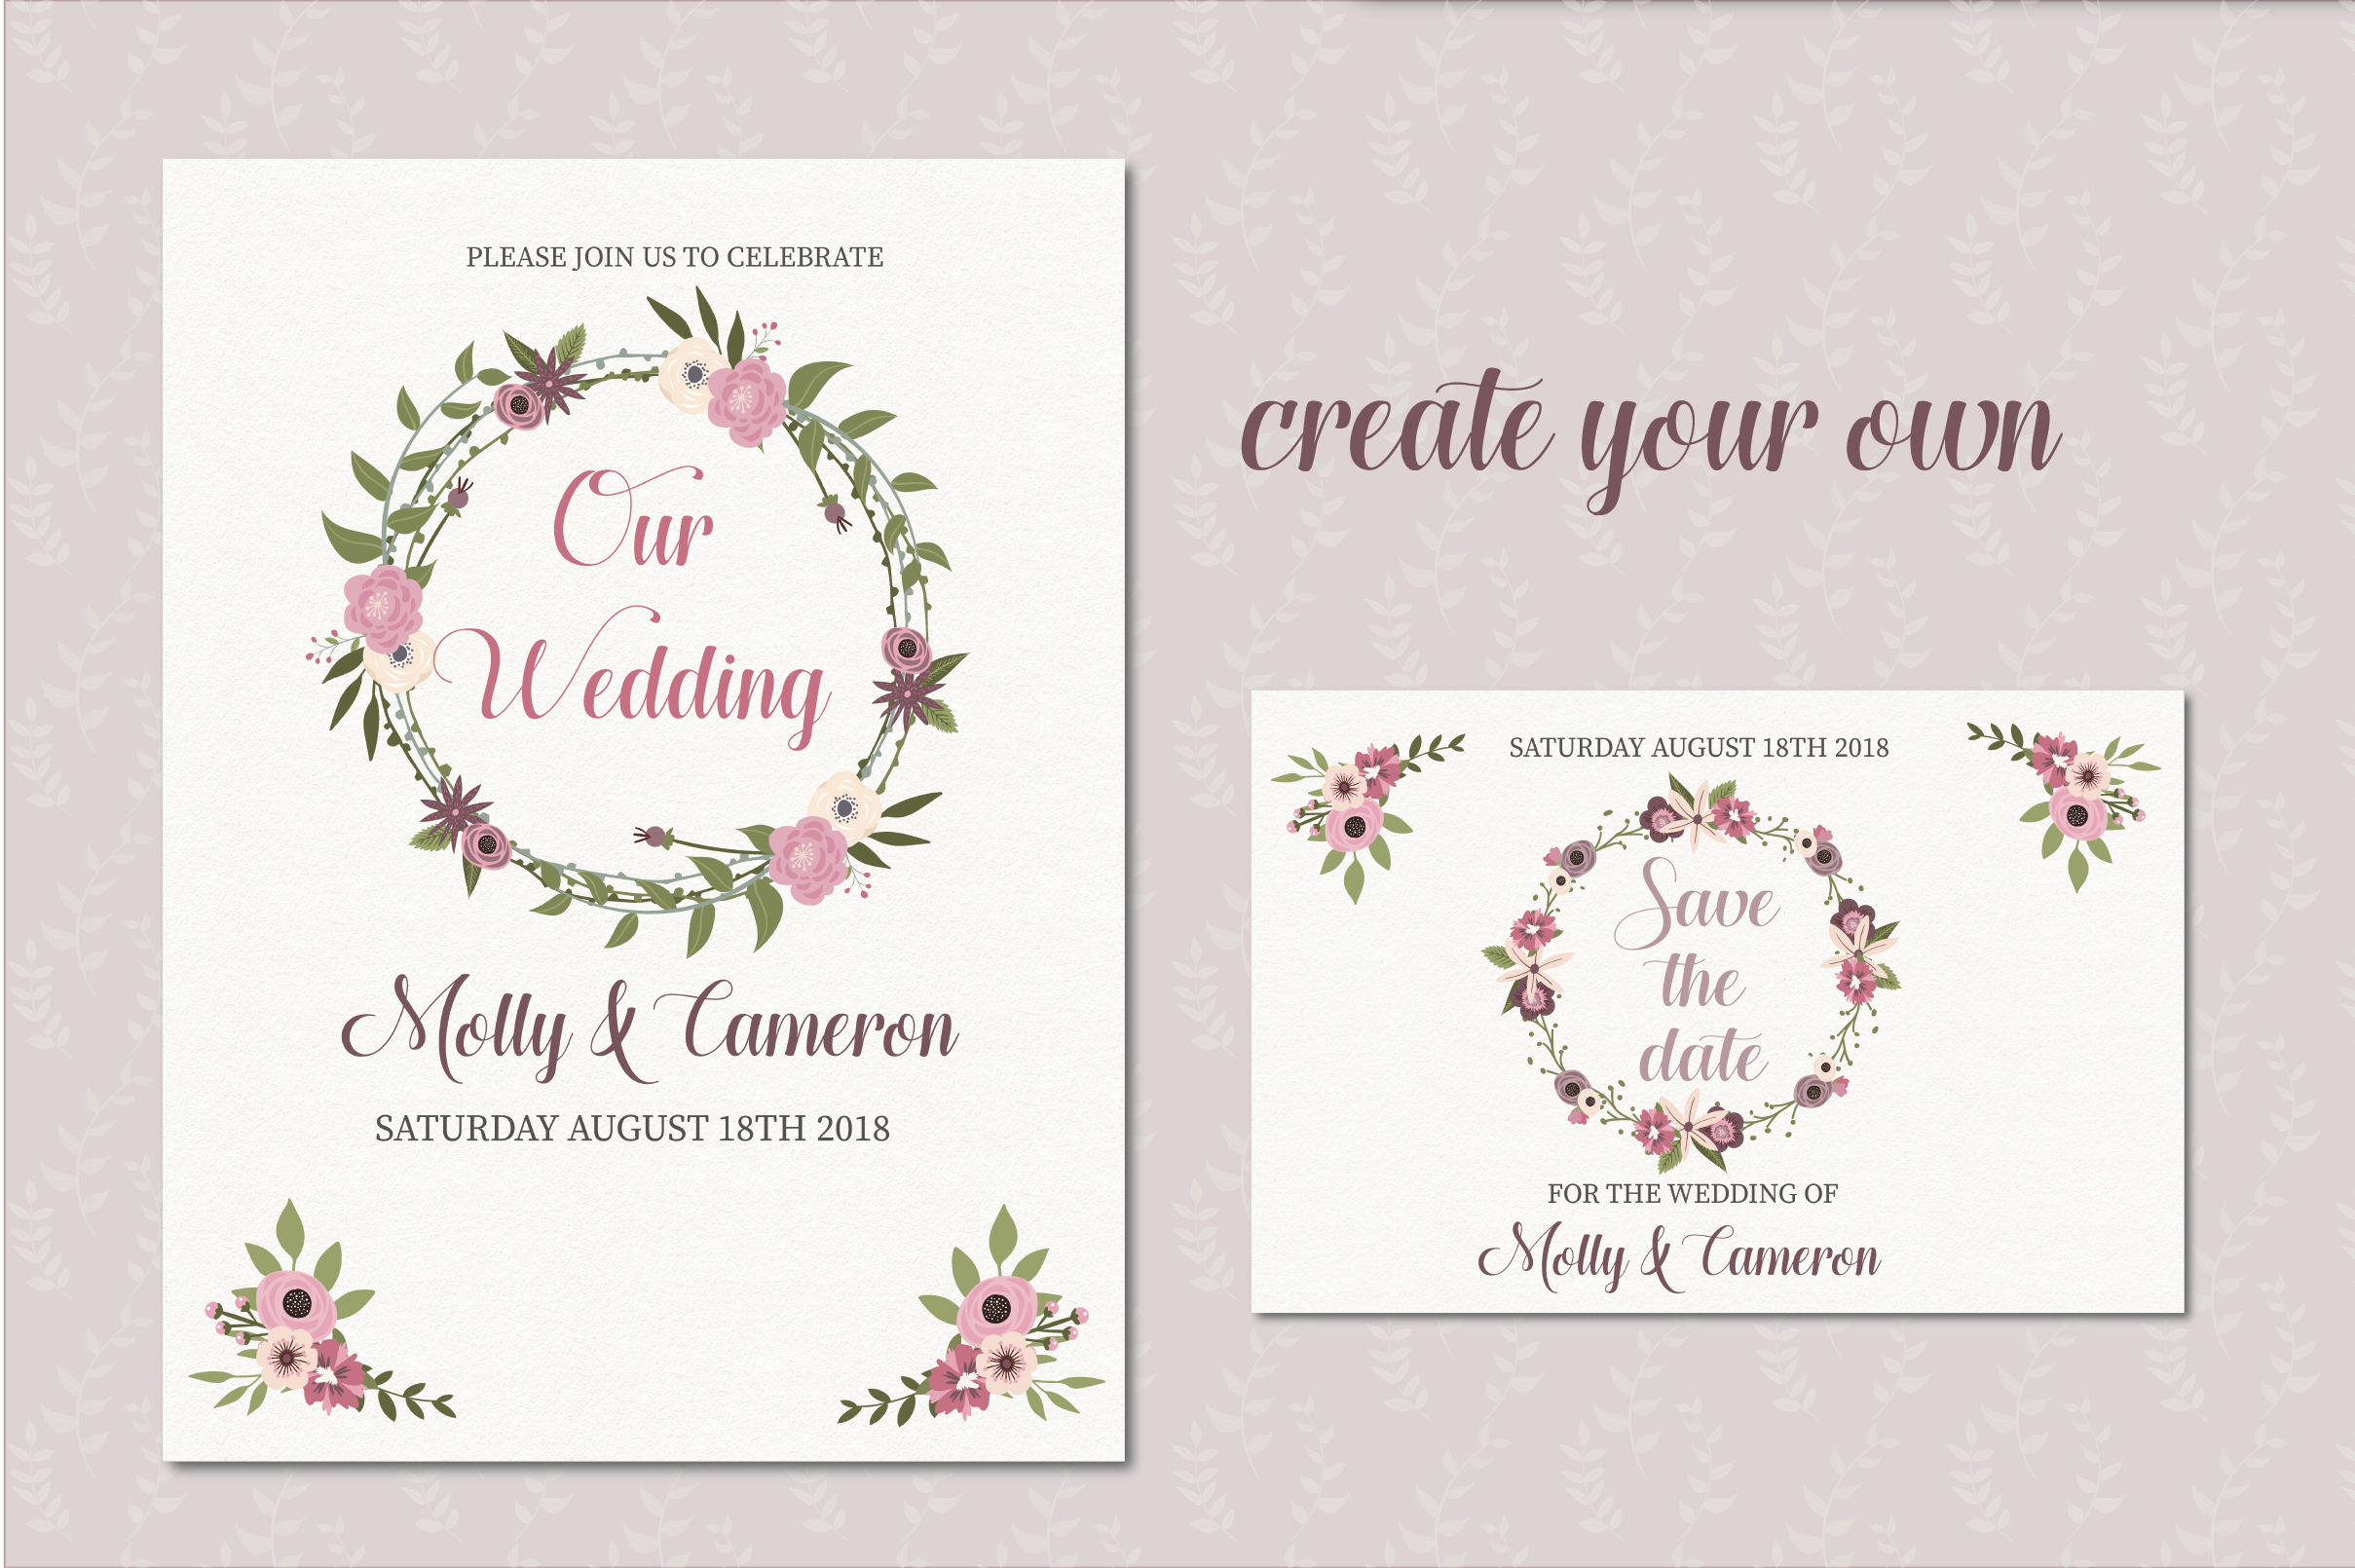 Wedding florals clipart example image 4